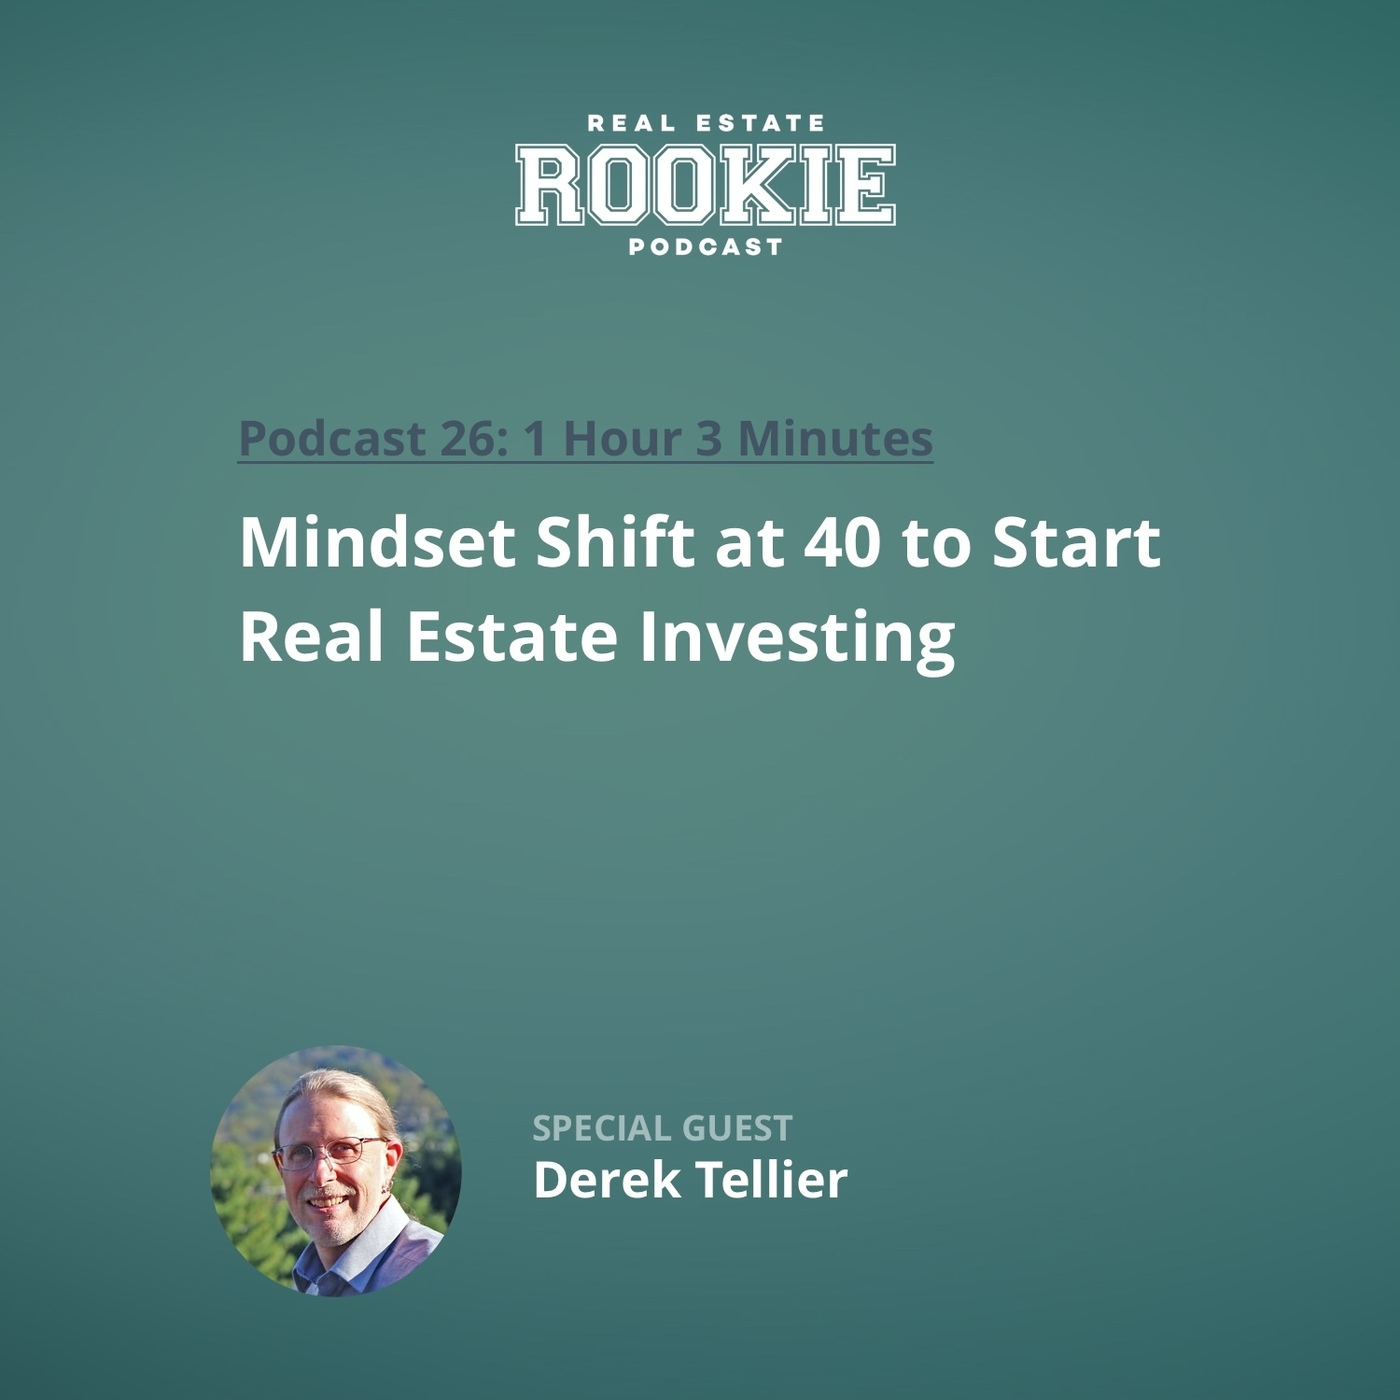 Mindset Shift at 40 to Start Real Estate Investing with Derek Tellier